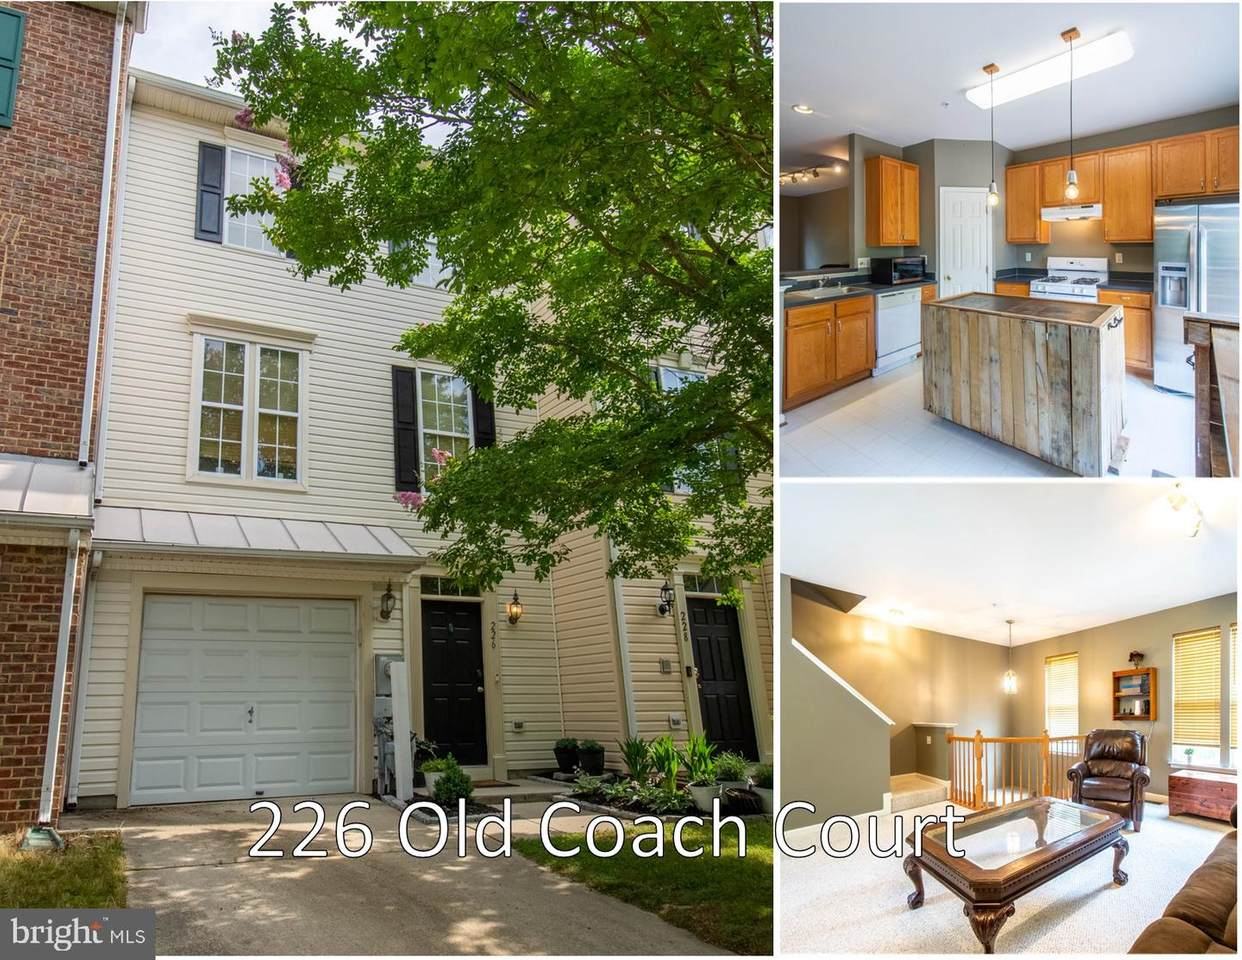 226 Old Coach Court - Photo 1